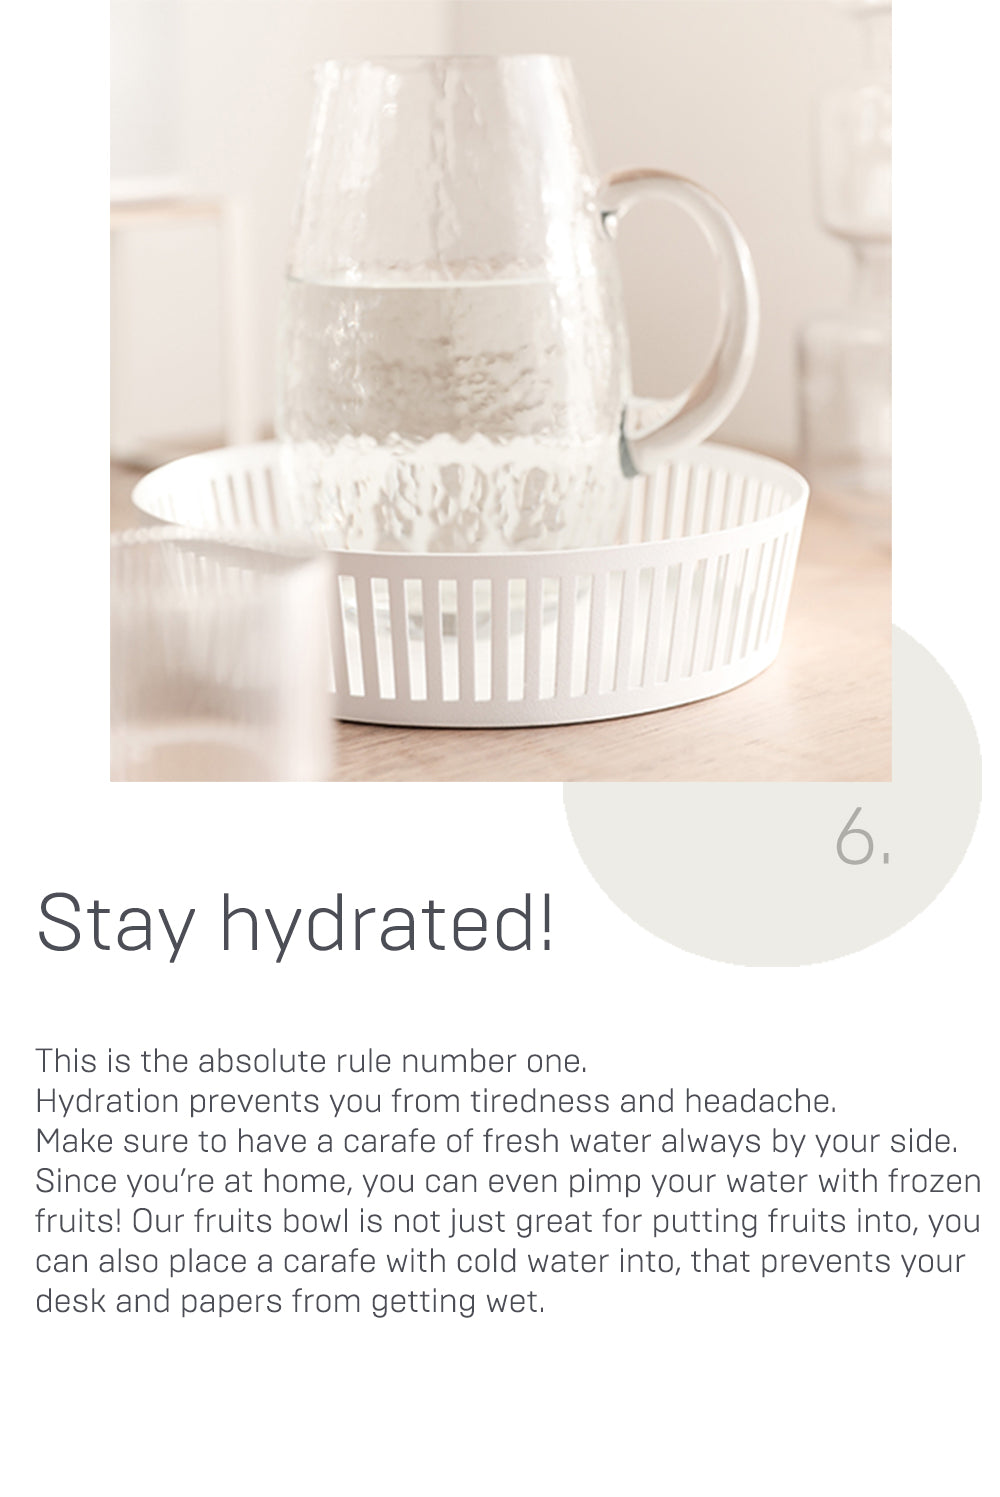 Stay hydrated!